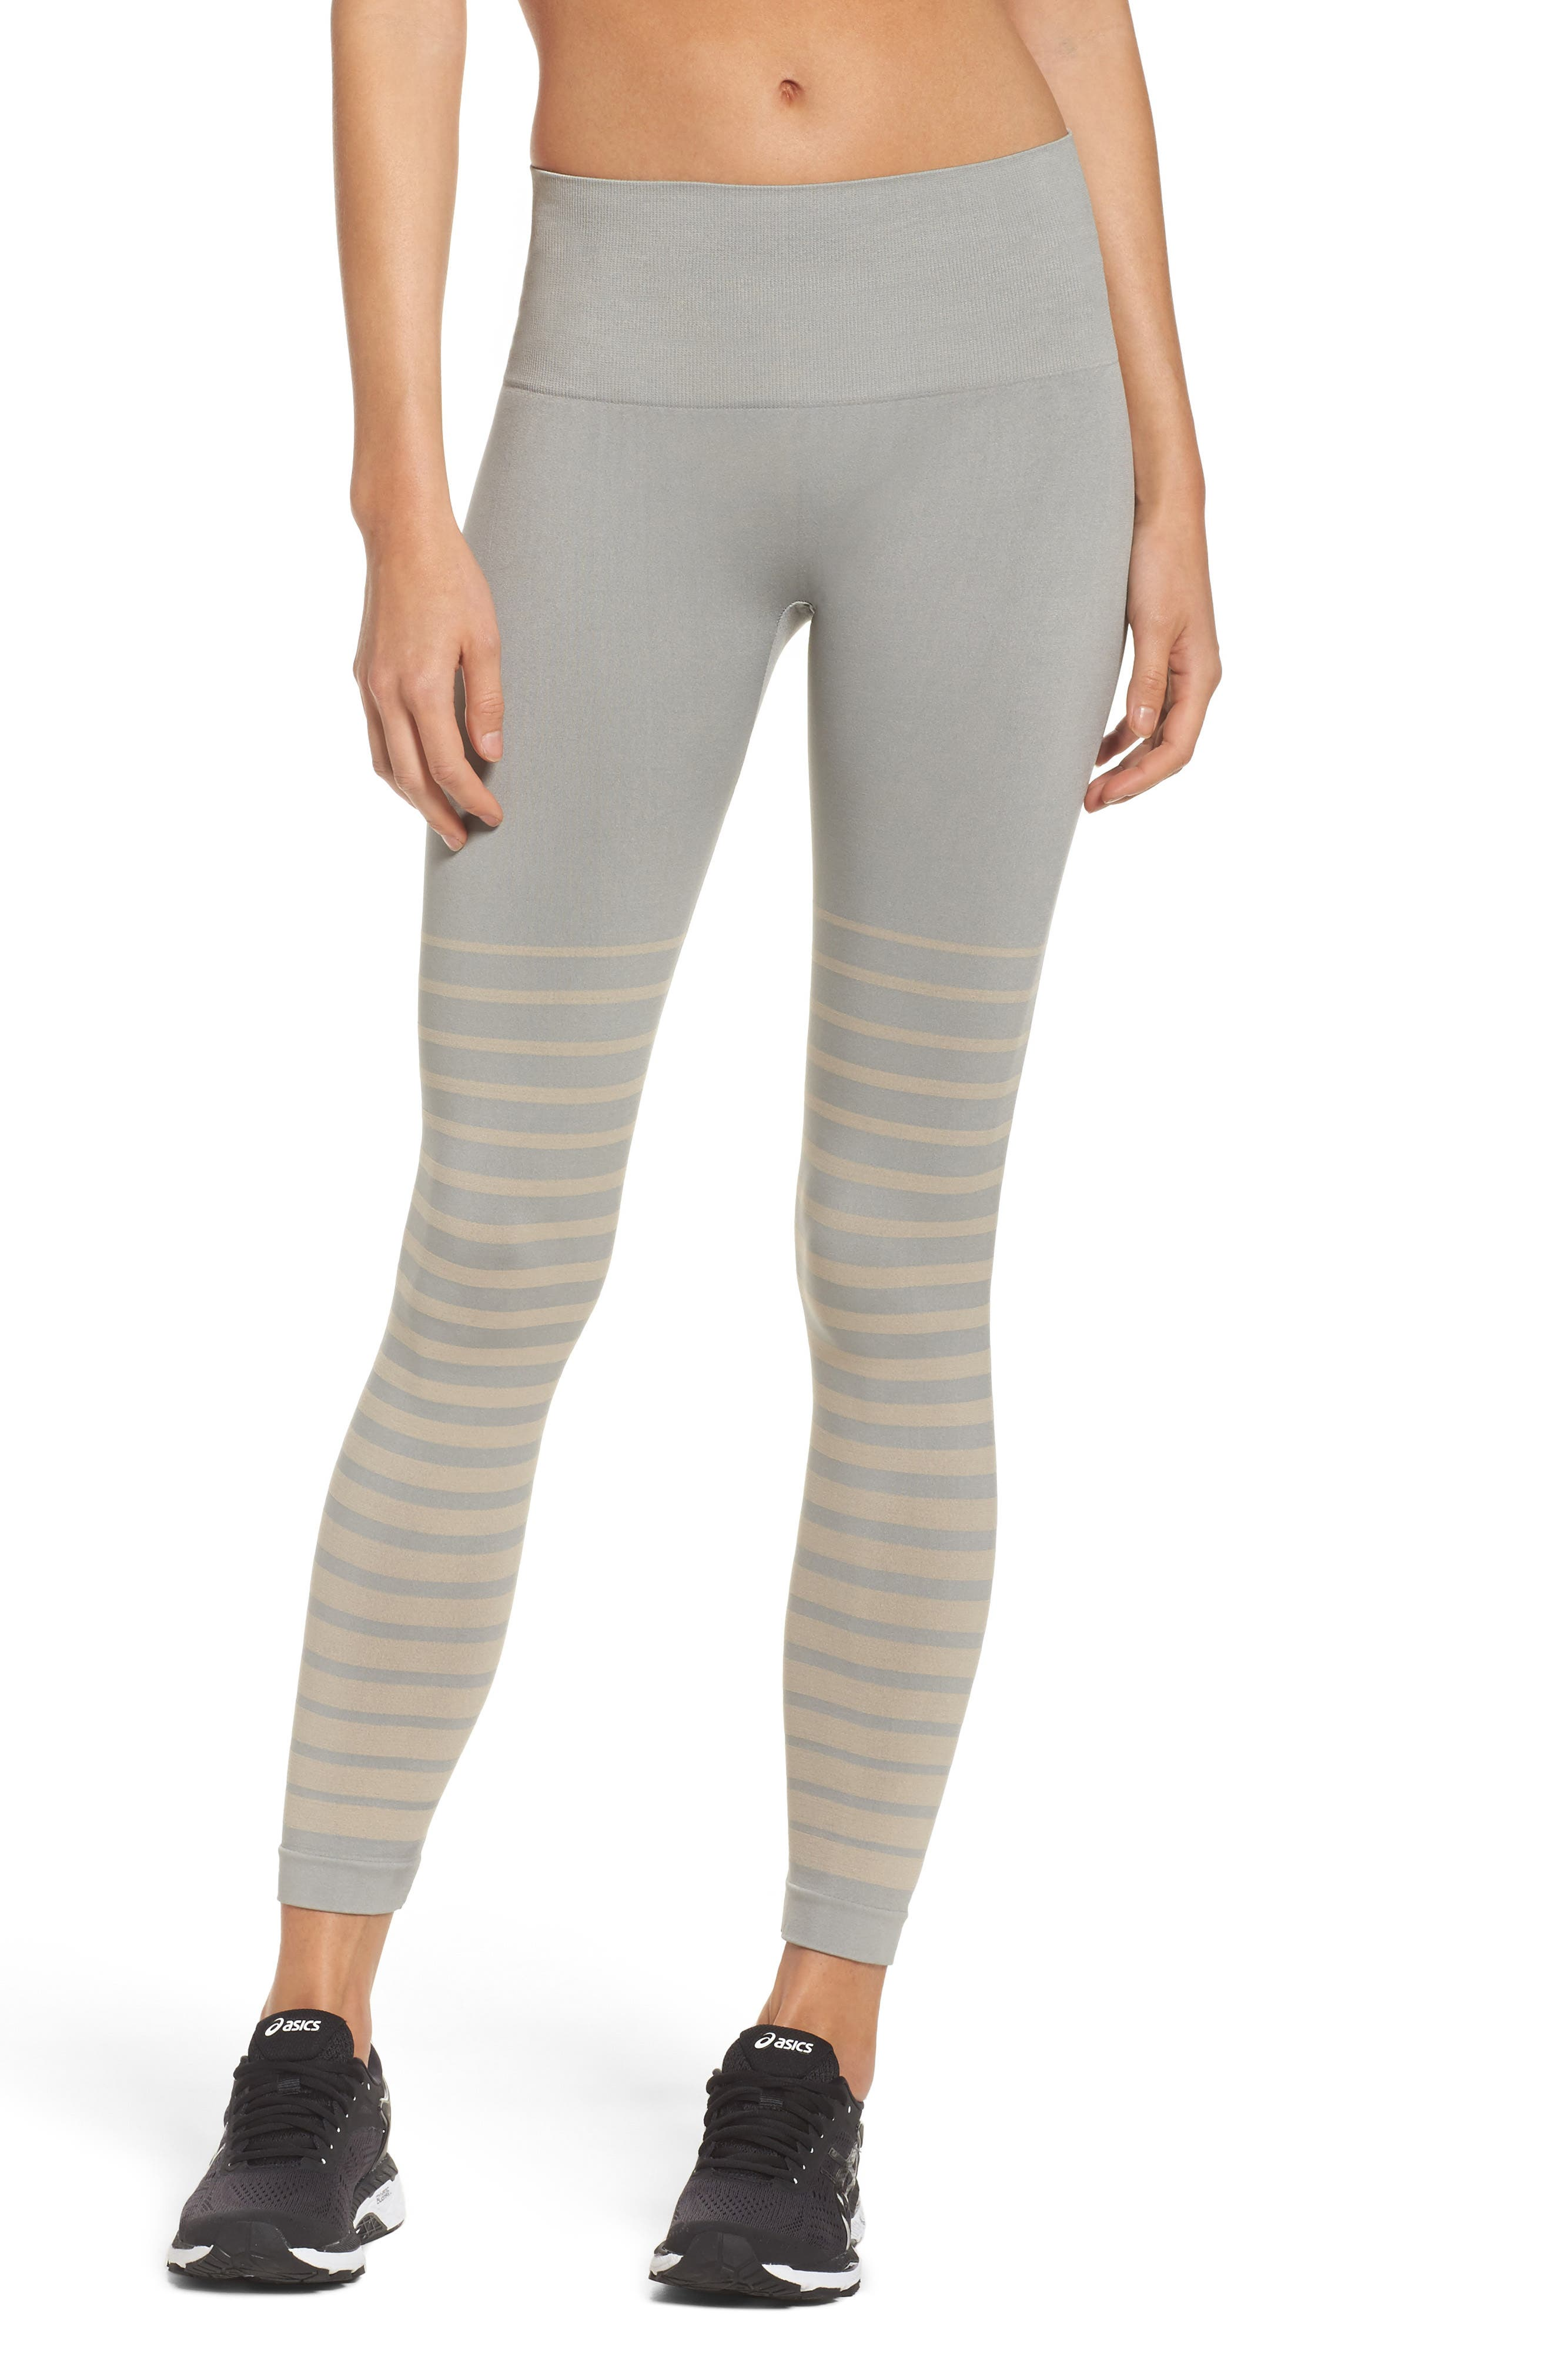 Front Runner High Waist Leggings,                         Main,                         color, Wild Dove And Pink Tint